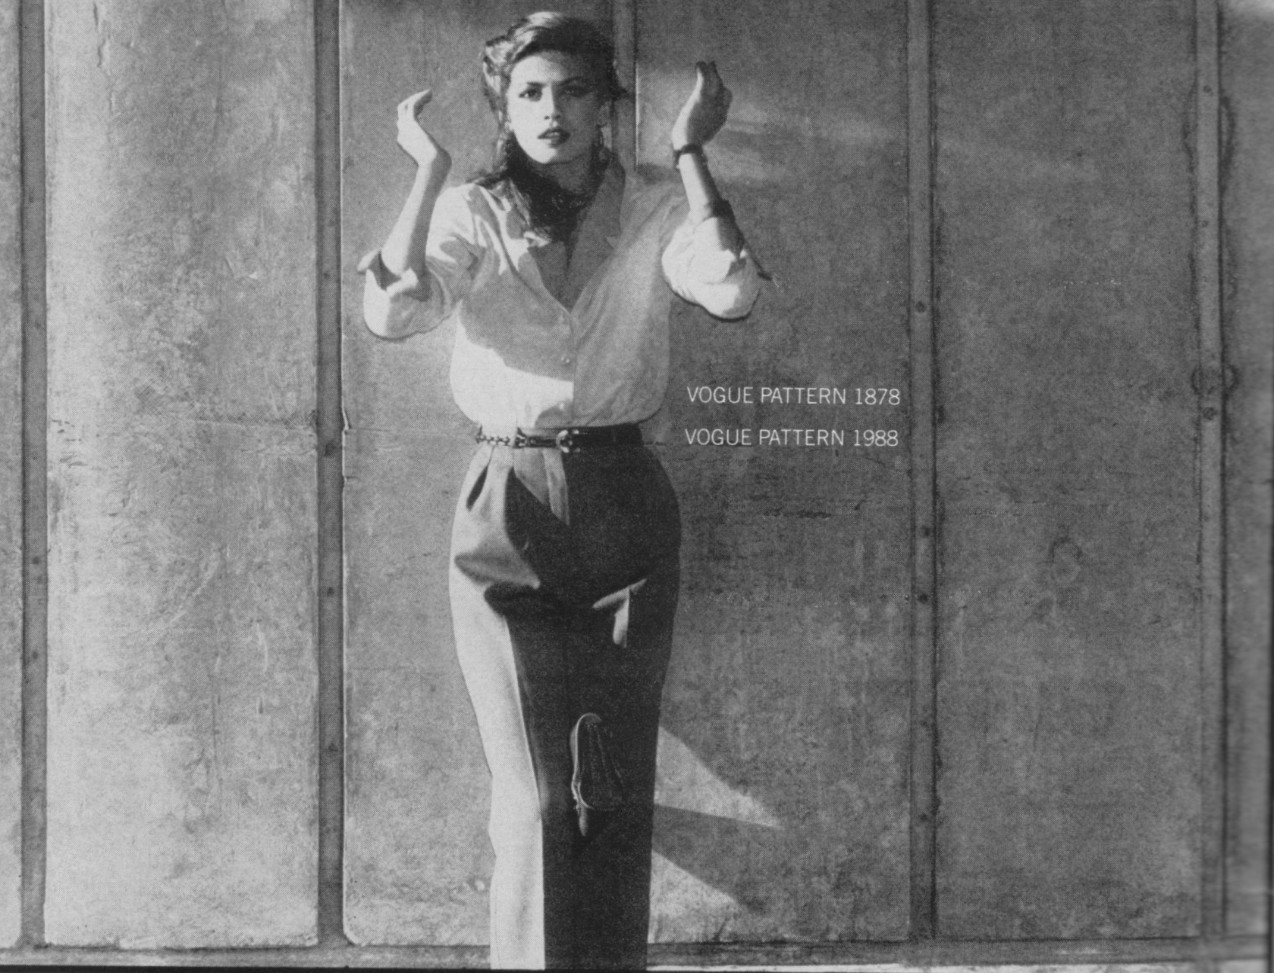 Gia Carangi models Vogue Patterns by Calvin Klein and Yves Saint Laurent. Vogue, October 1978. Photo by Andrea Blanch